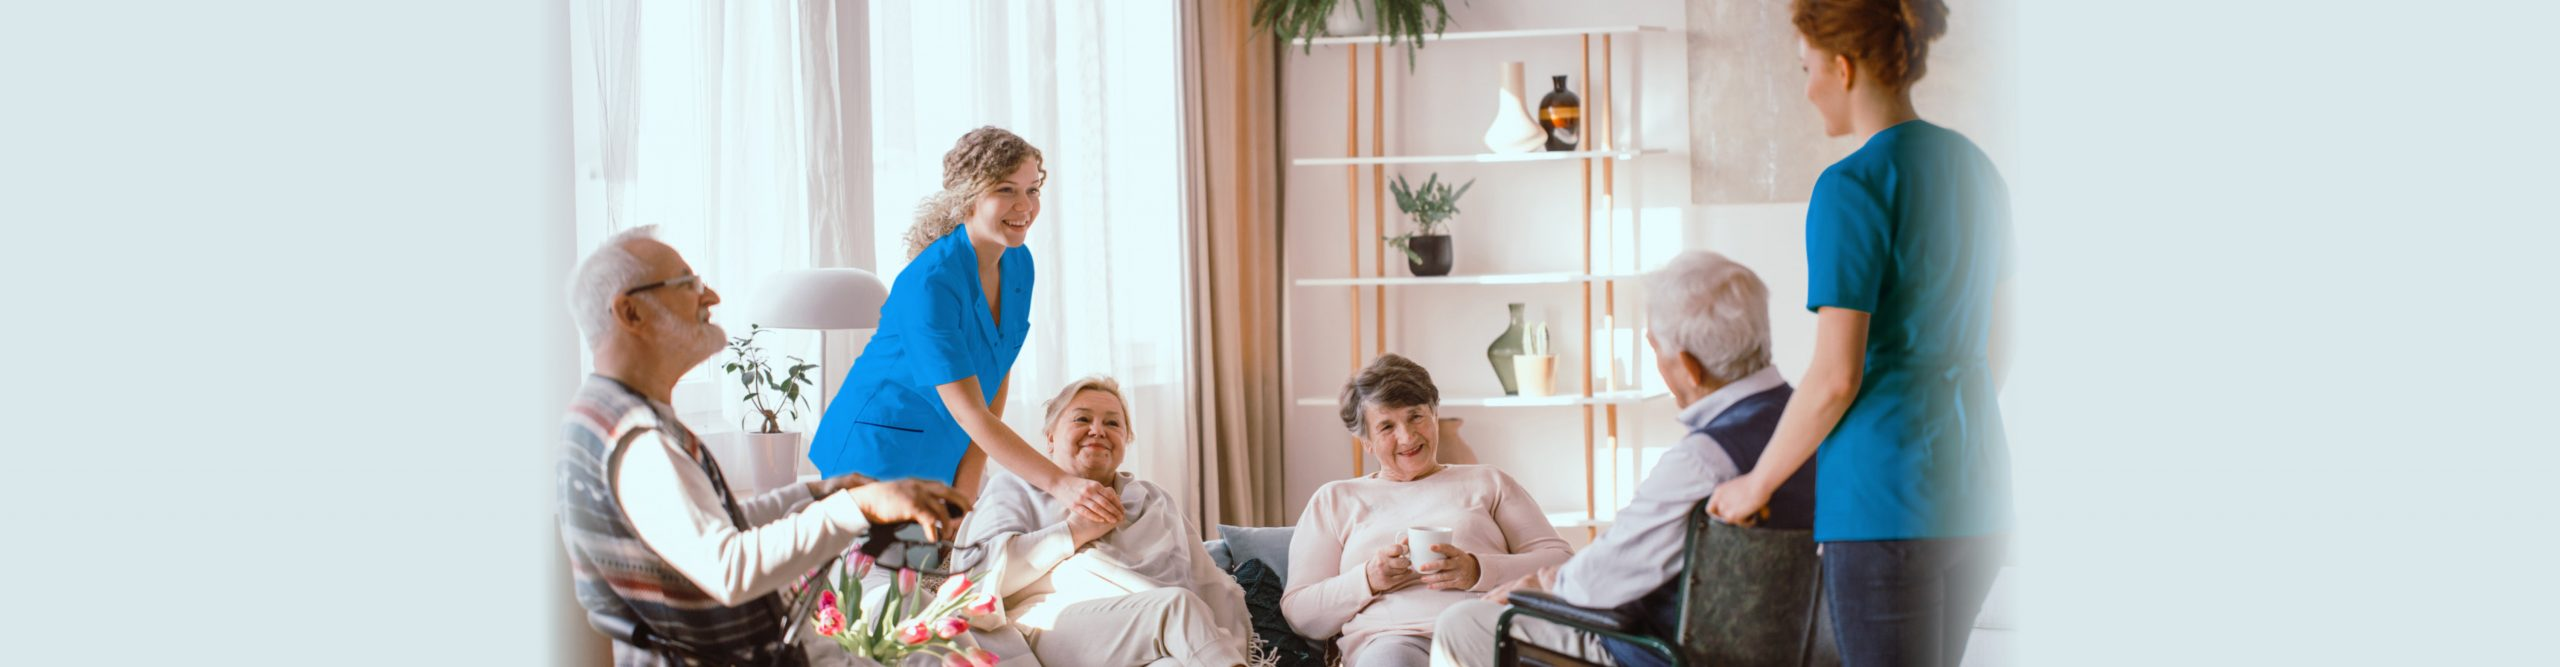 Disabled grandparents spending time in common room with their caregivers